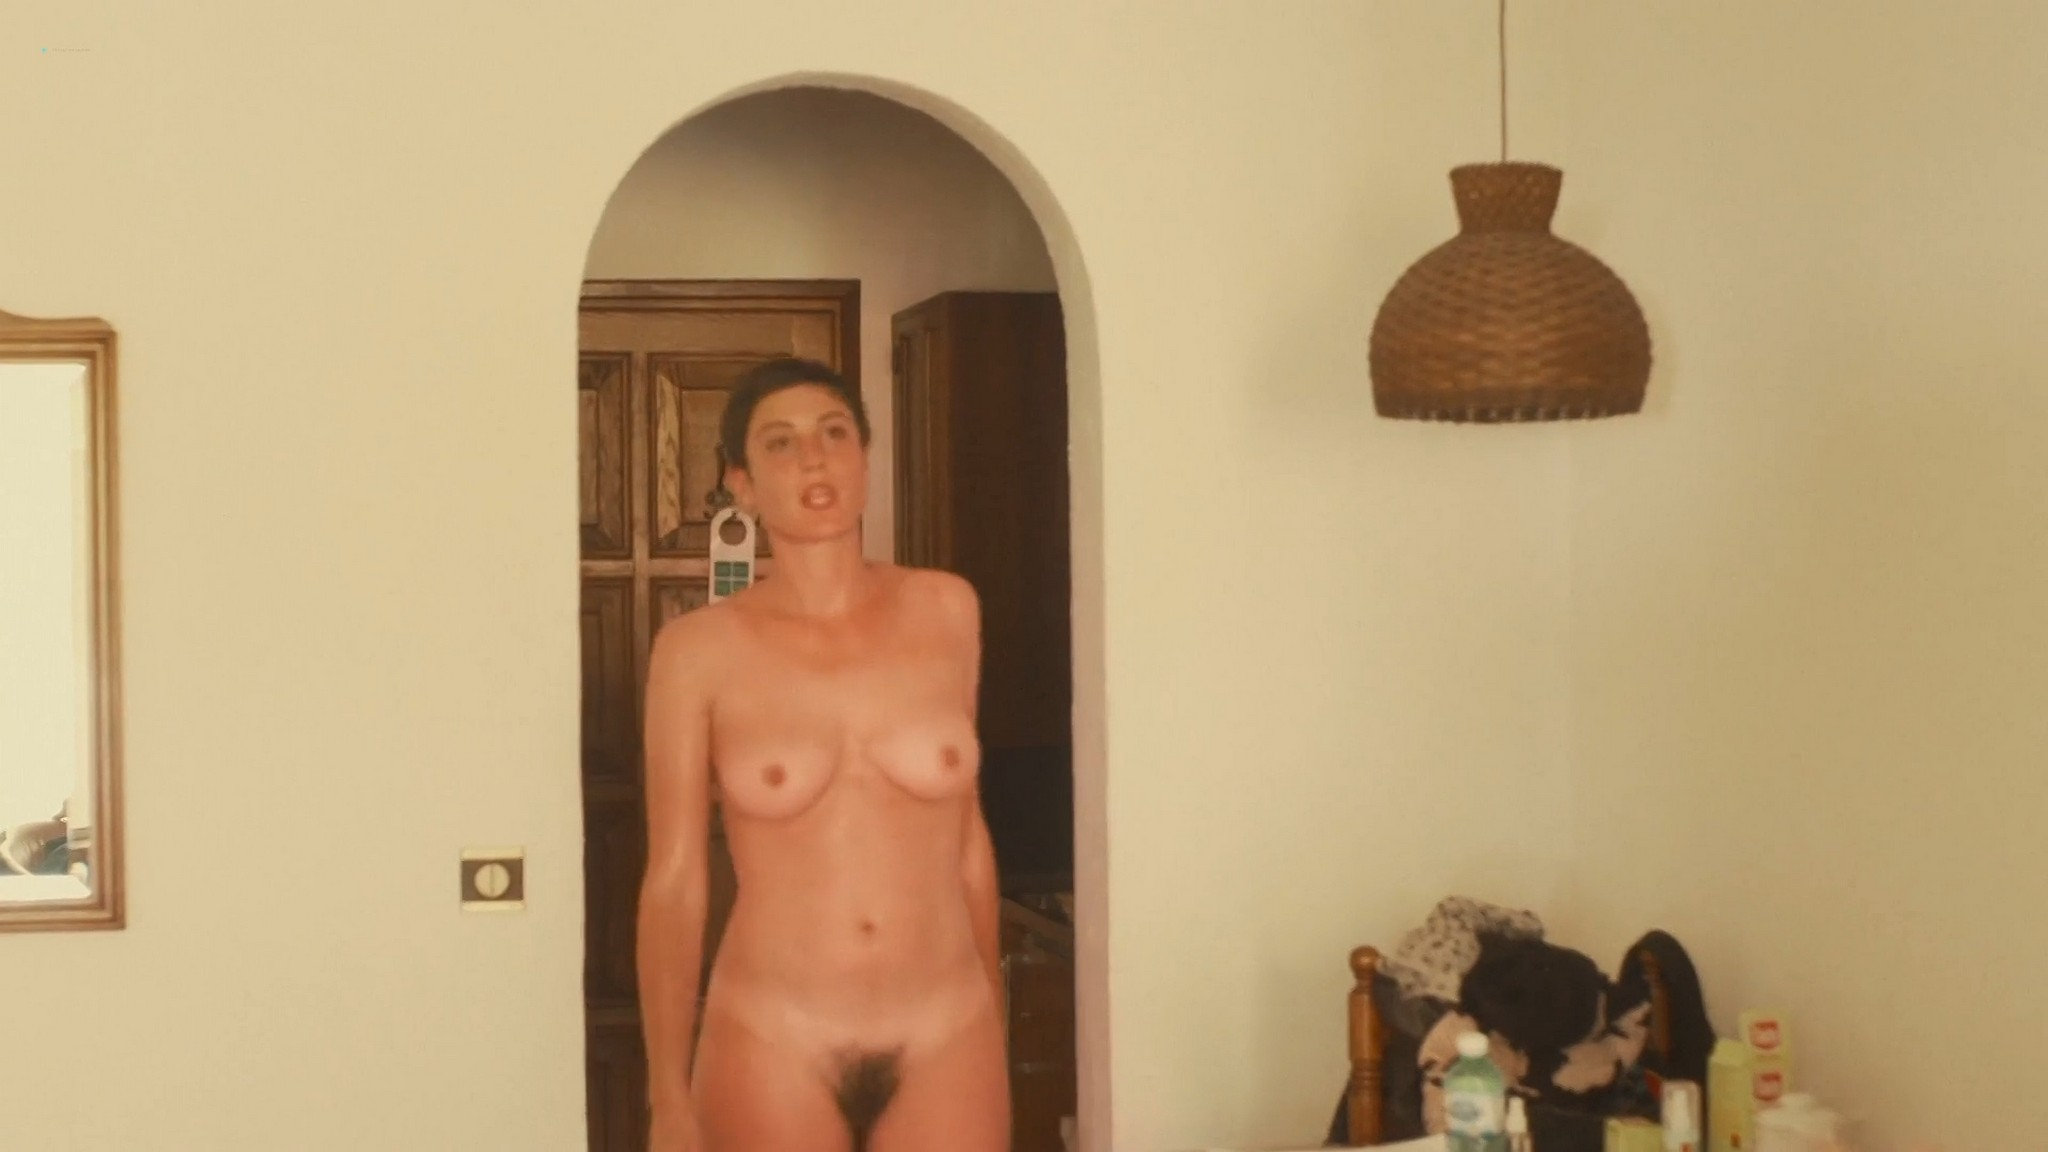 Carole Le Page nude full frontal Sophie Letourneur Lolita Chammah nude too Les coquillettes FR 2012 1080p Web 11